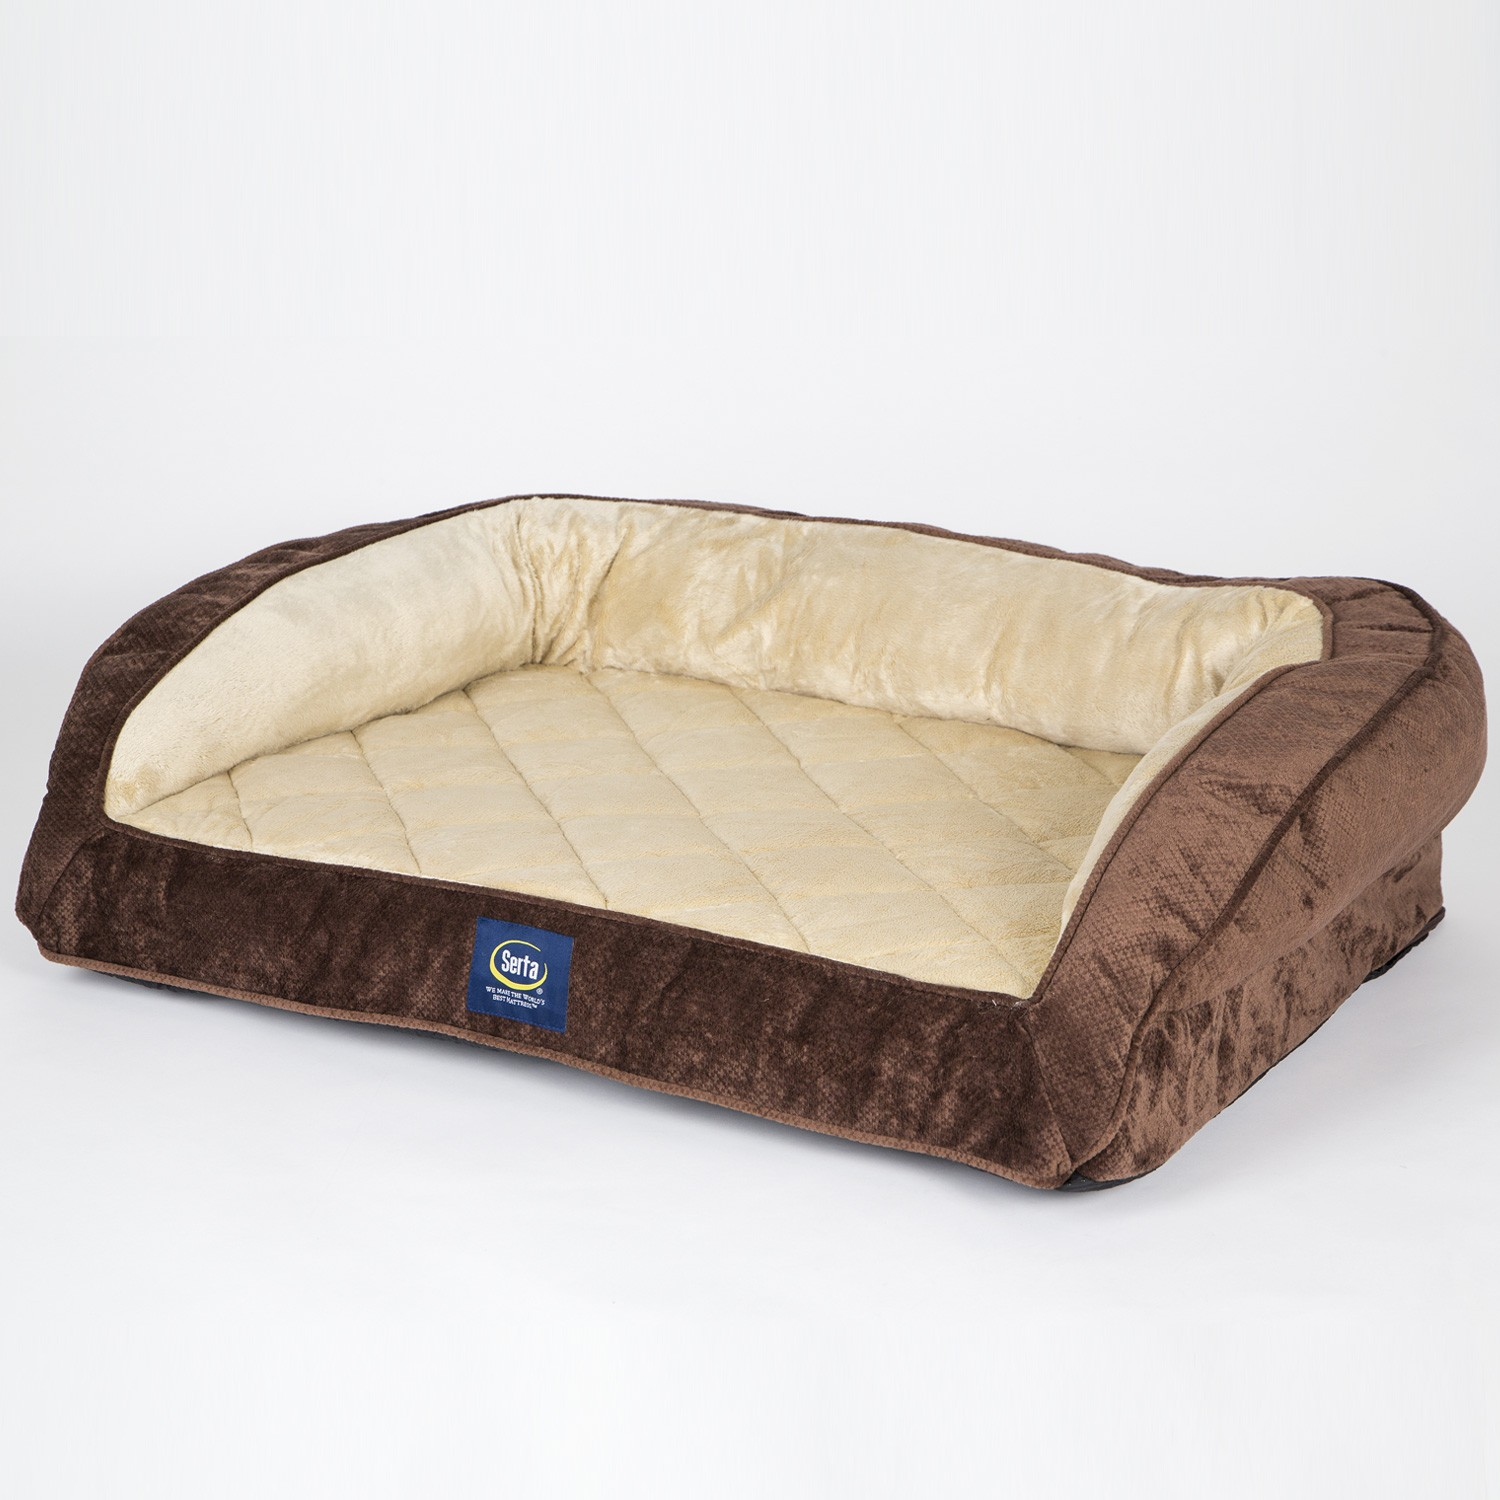 Serta Perfect Sleeper Oversized Orthopedic Sleeper Sofa Pet Bed Top Home Information